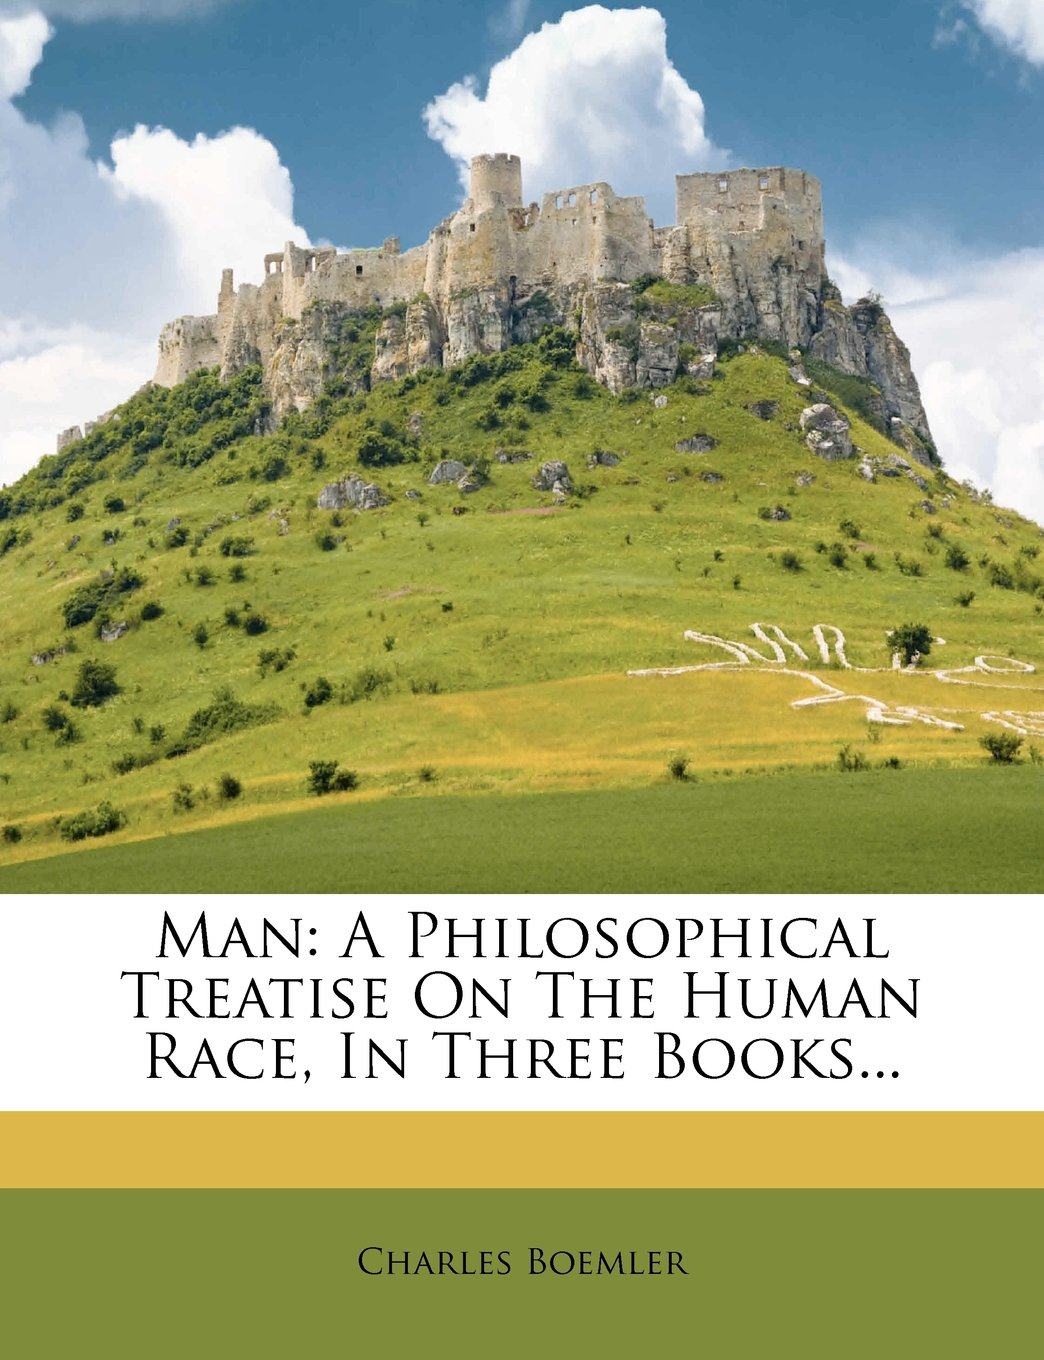 Read Online Man: A Philosophical Treatise on the Human Race, in Three Books... PDF